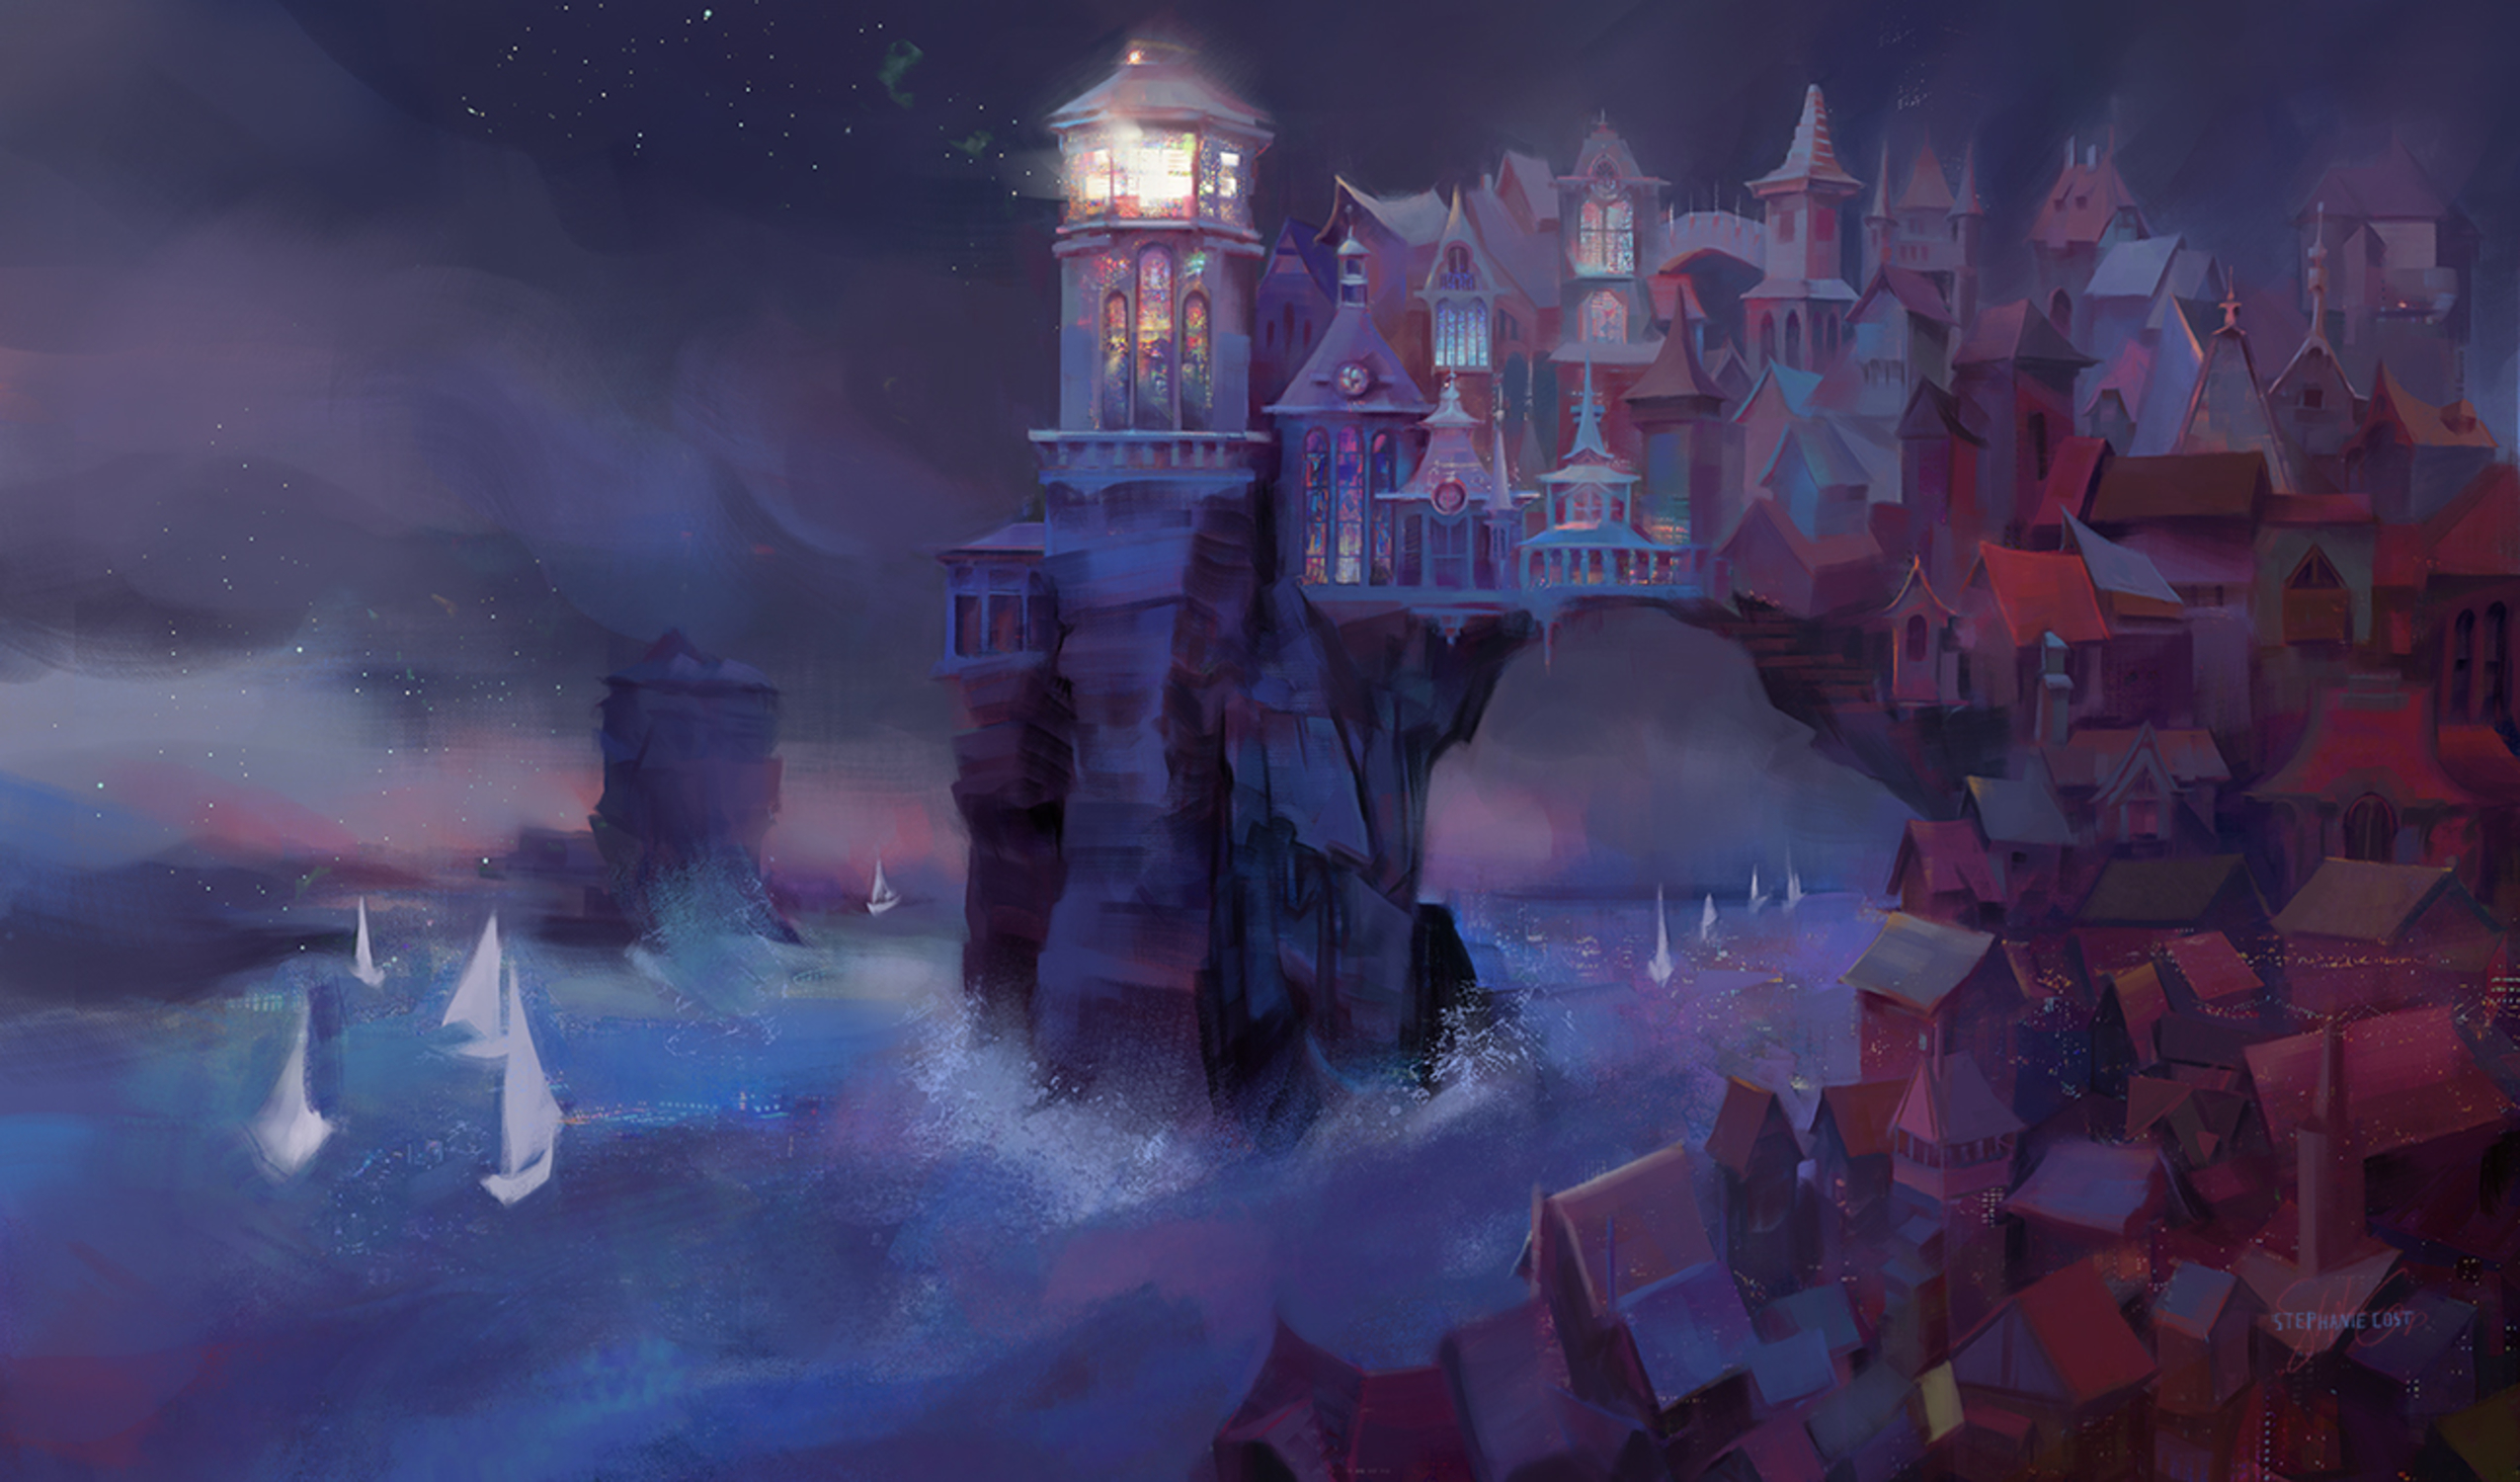 Lorawin, City of Light Artwork by Stephanie Cost